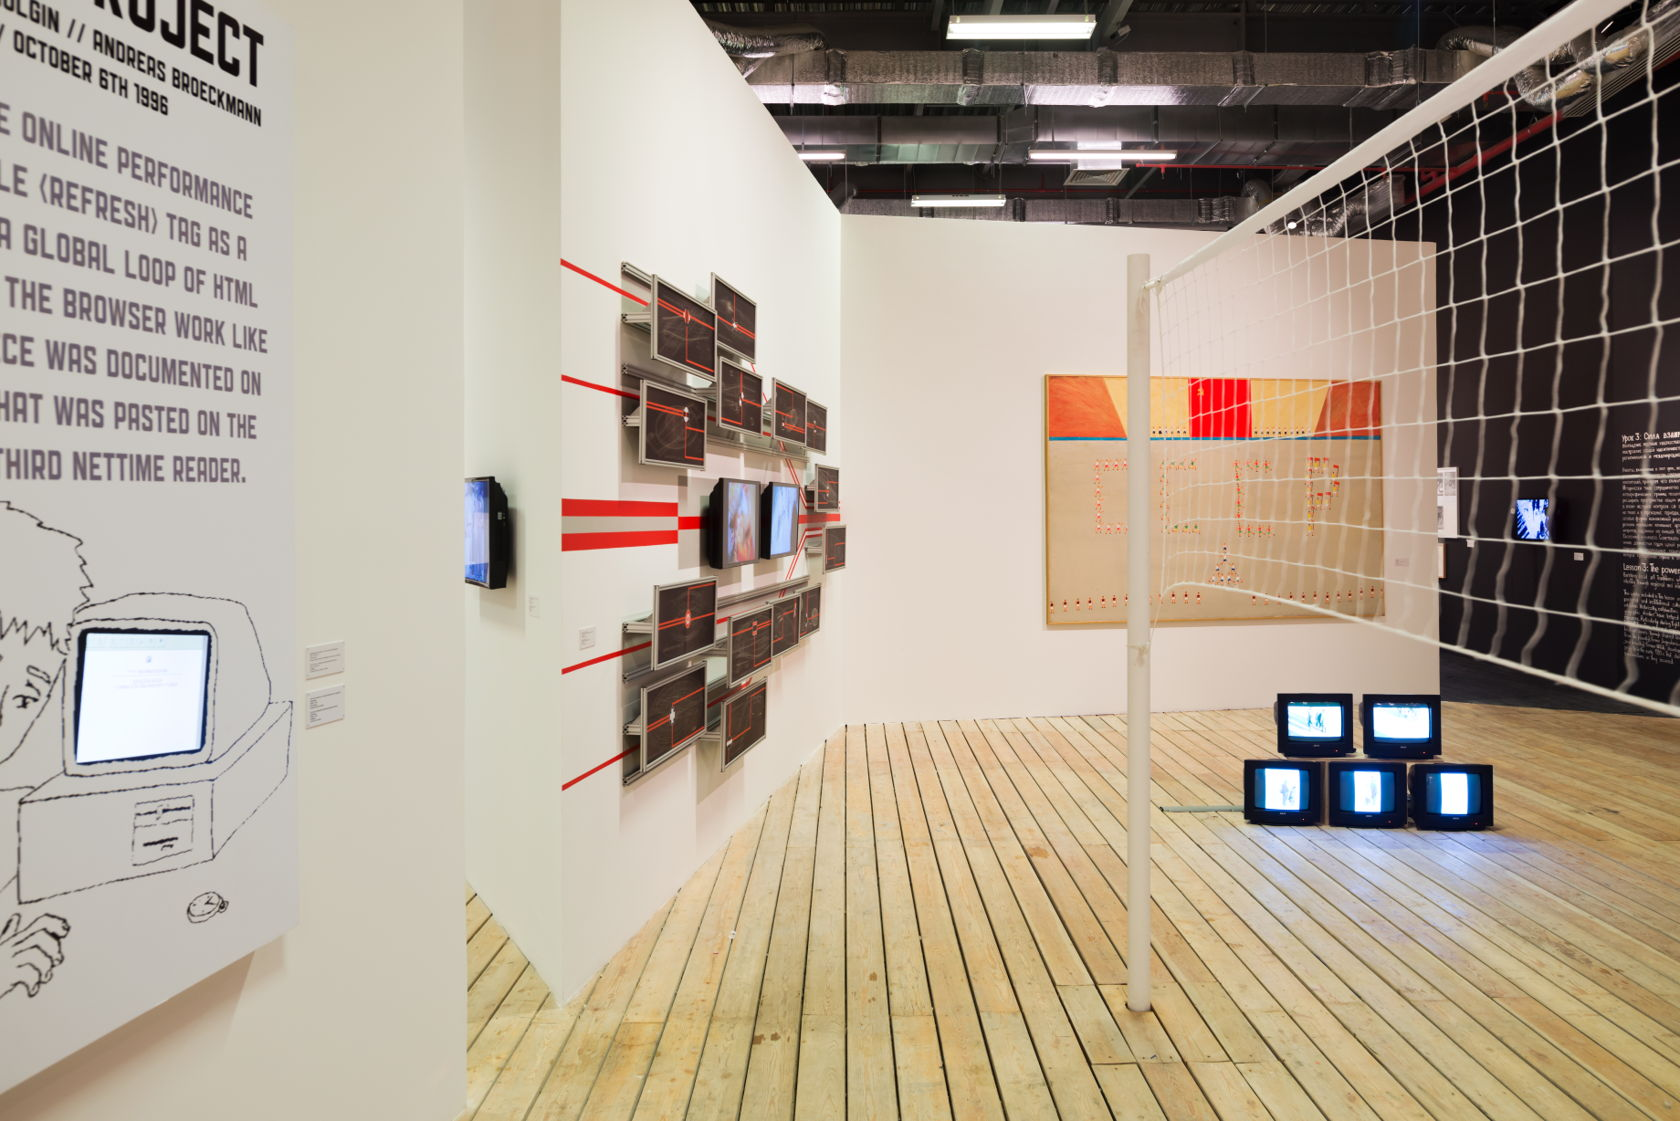 The Exhibition Grammar Of Freedom / Five Lessons: Works From The Arteast  2000+ Collection, Installation View, Garage Museum Of Contemporary Art, 2015